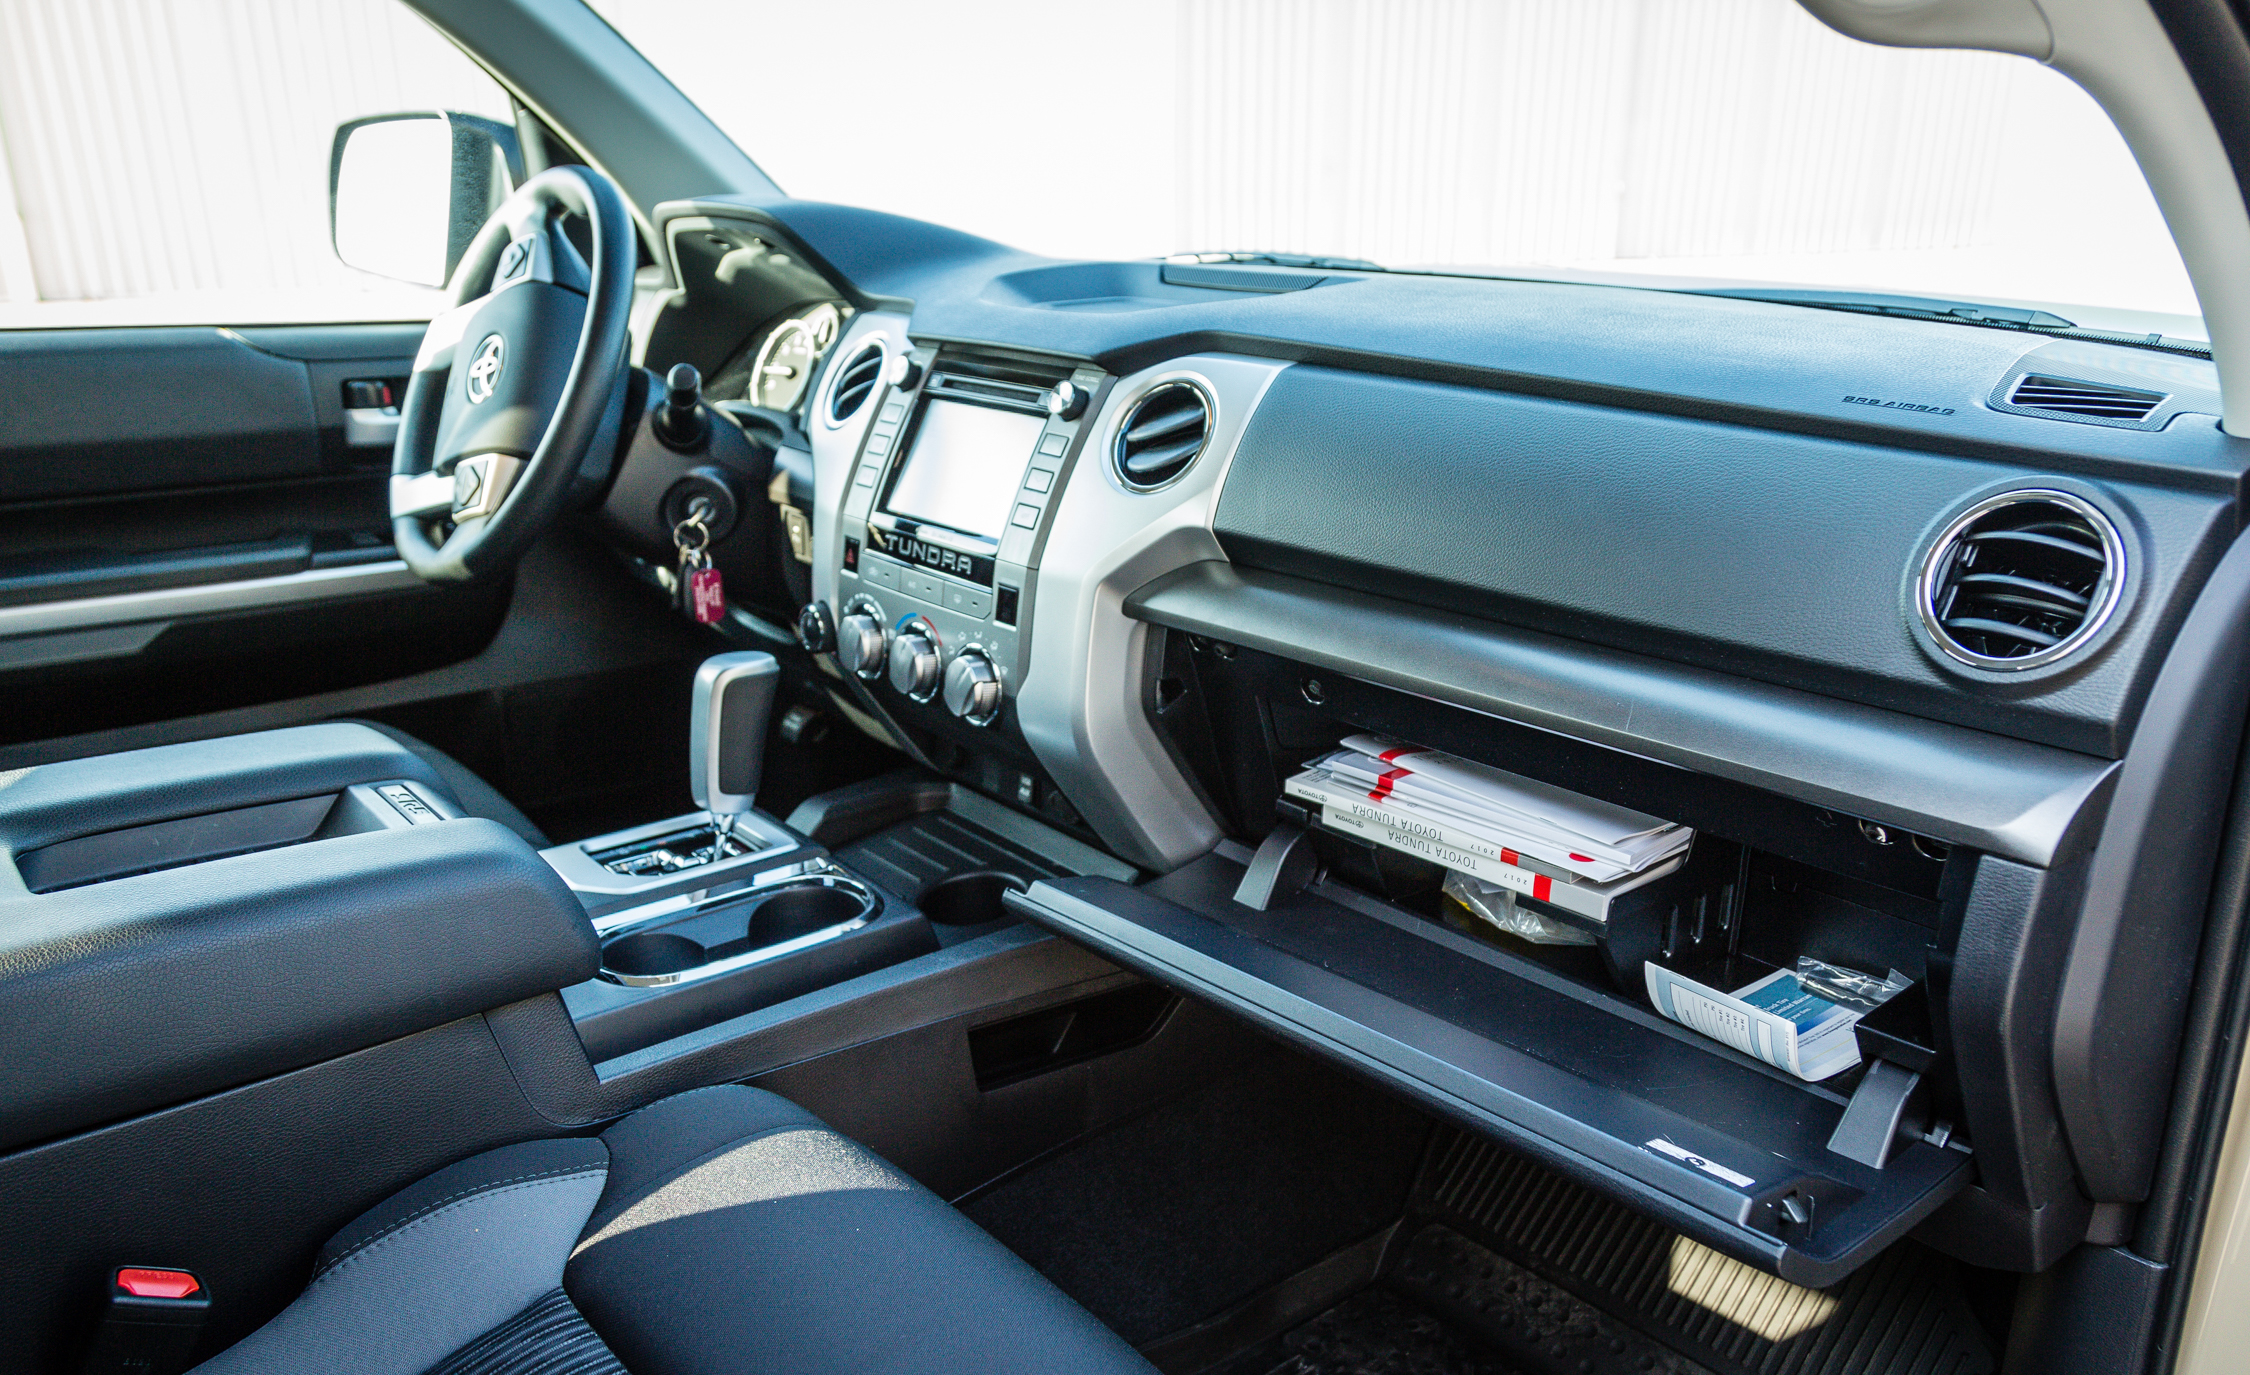 2017 Toyota Tundra Interior Dashboard (View 16 of 24)